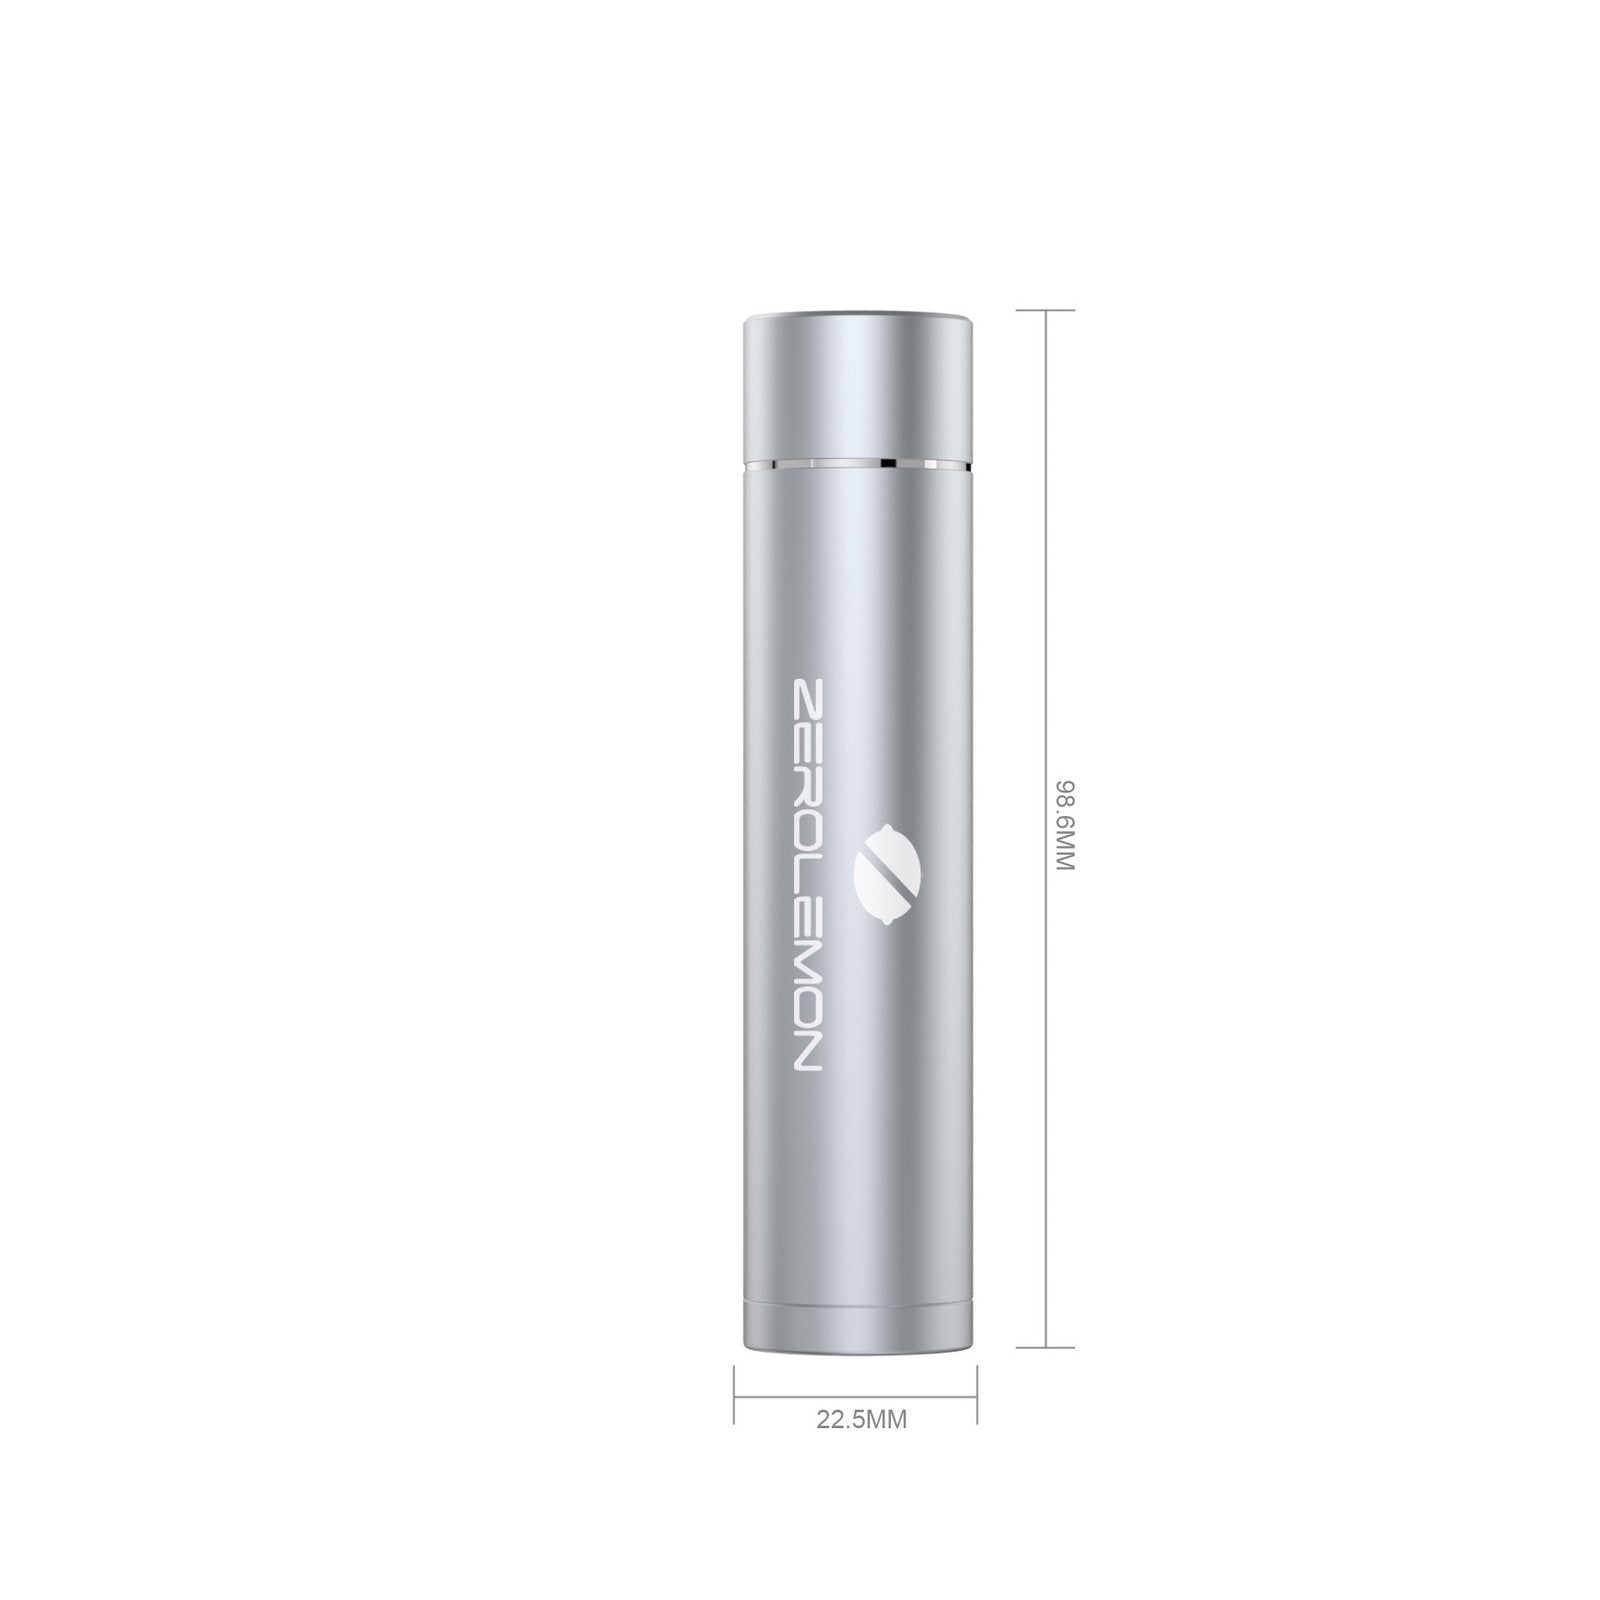 JuiceStick Portable Charger 2600mAh [Shipping to US Only]